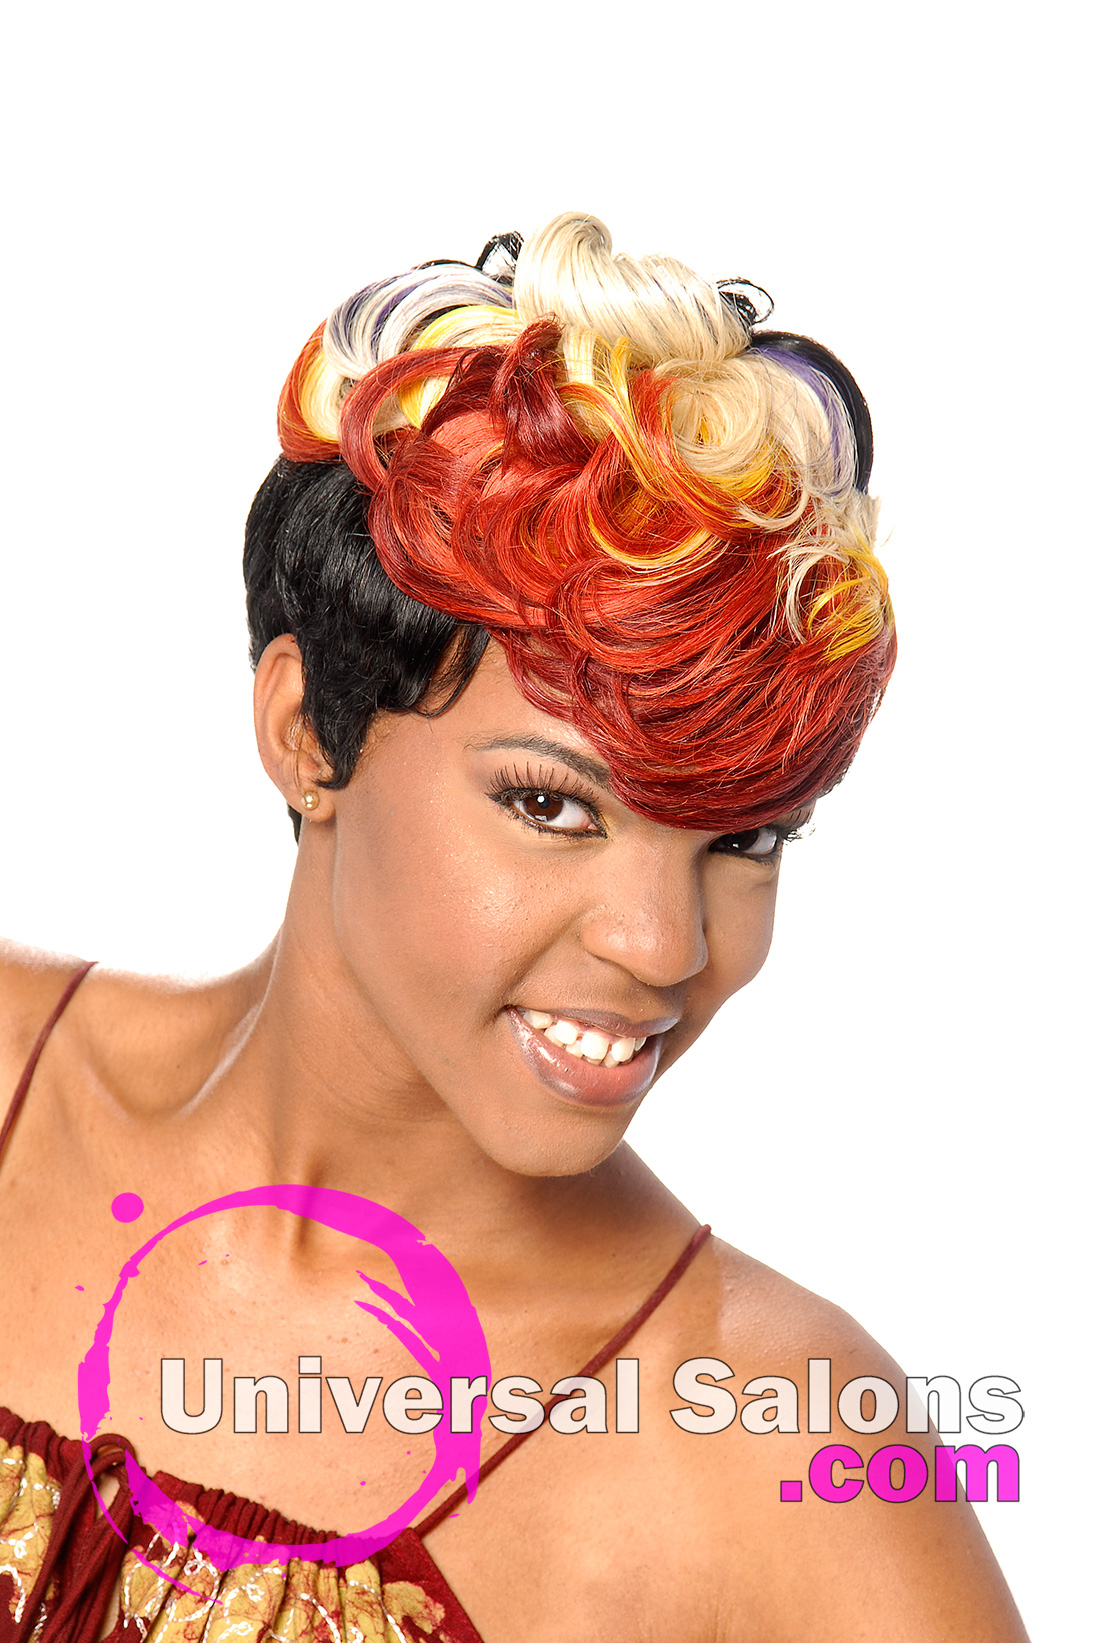 Swell Quick Weave Universal Salons Hairstyle And Hair Salon Galleries Short Hairstyles Gunalazisus